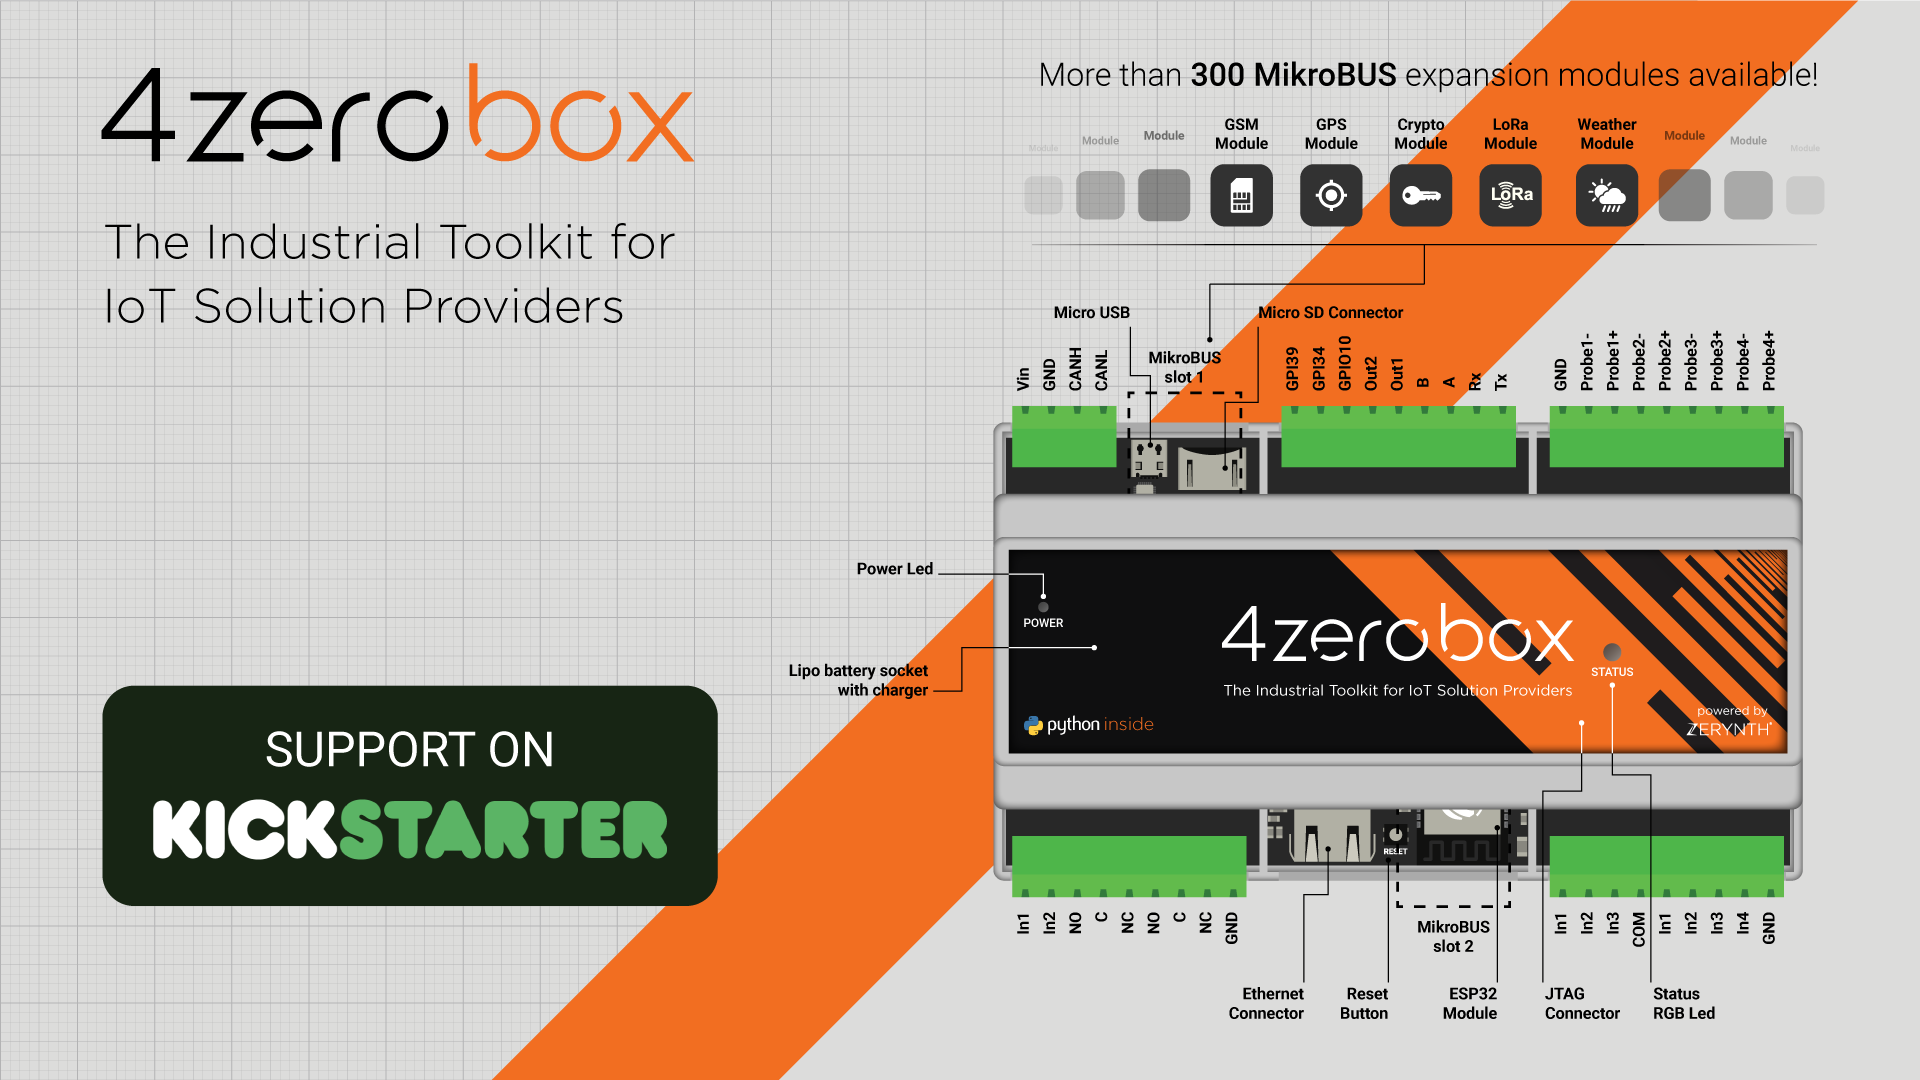 Introducing 4zerobox, the Industrial Toolkit for IoT Solution Providers powered by Zerynth